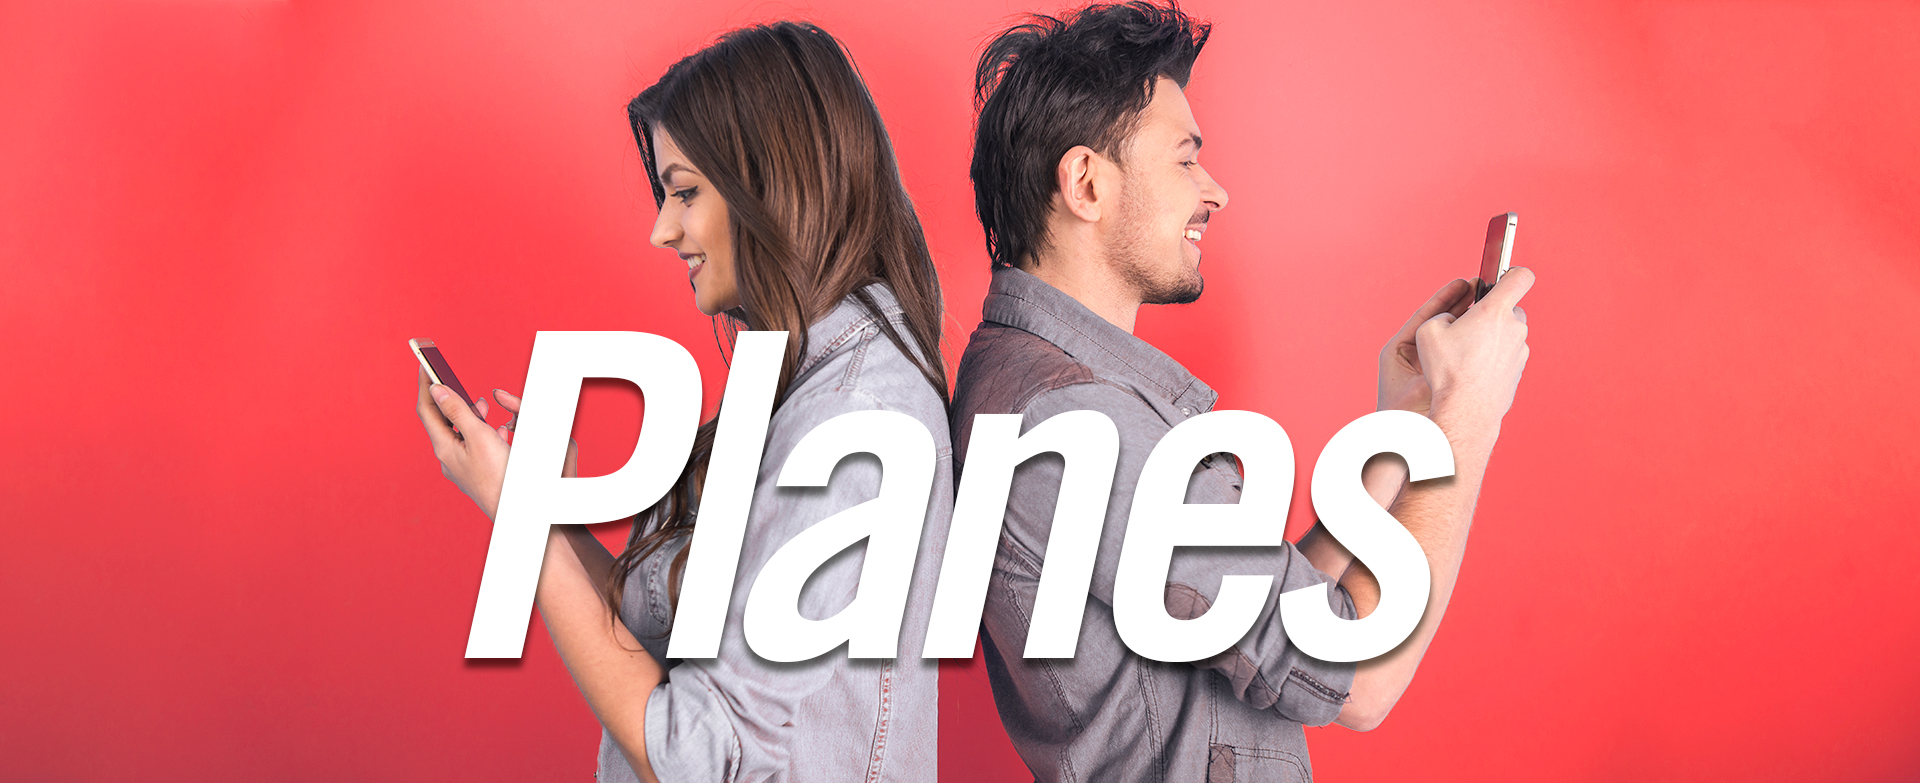 Banner Planes